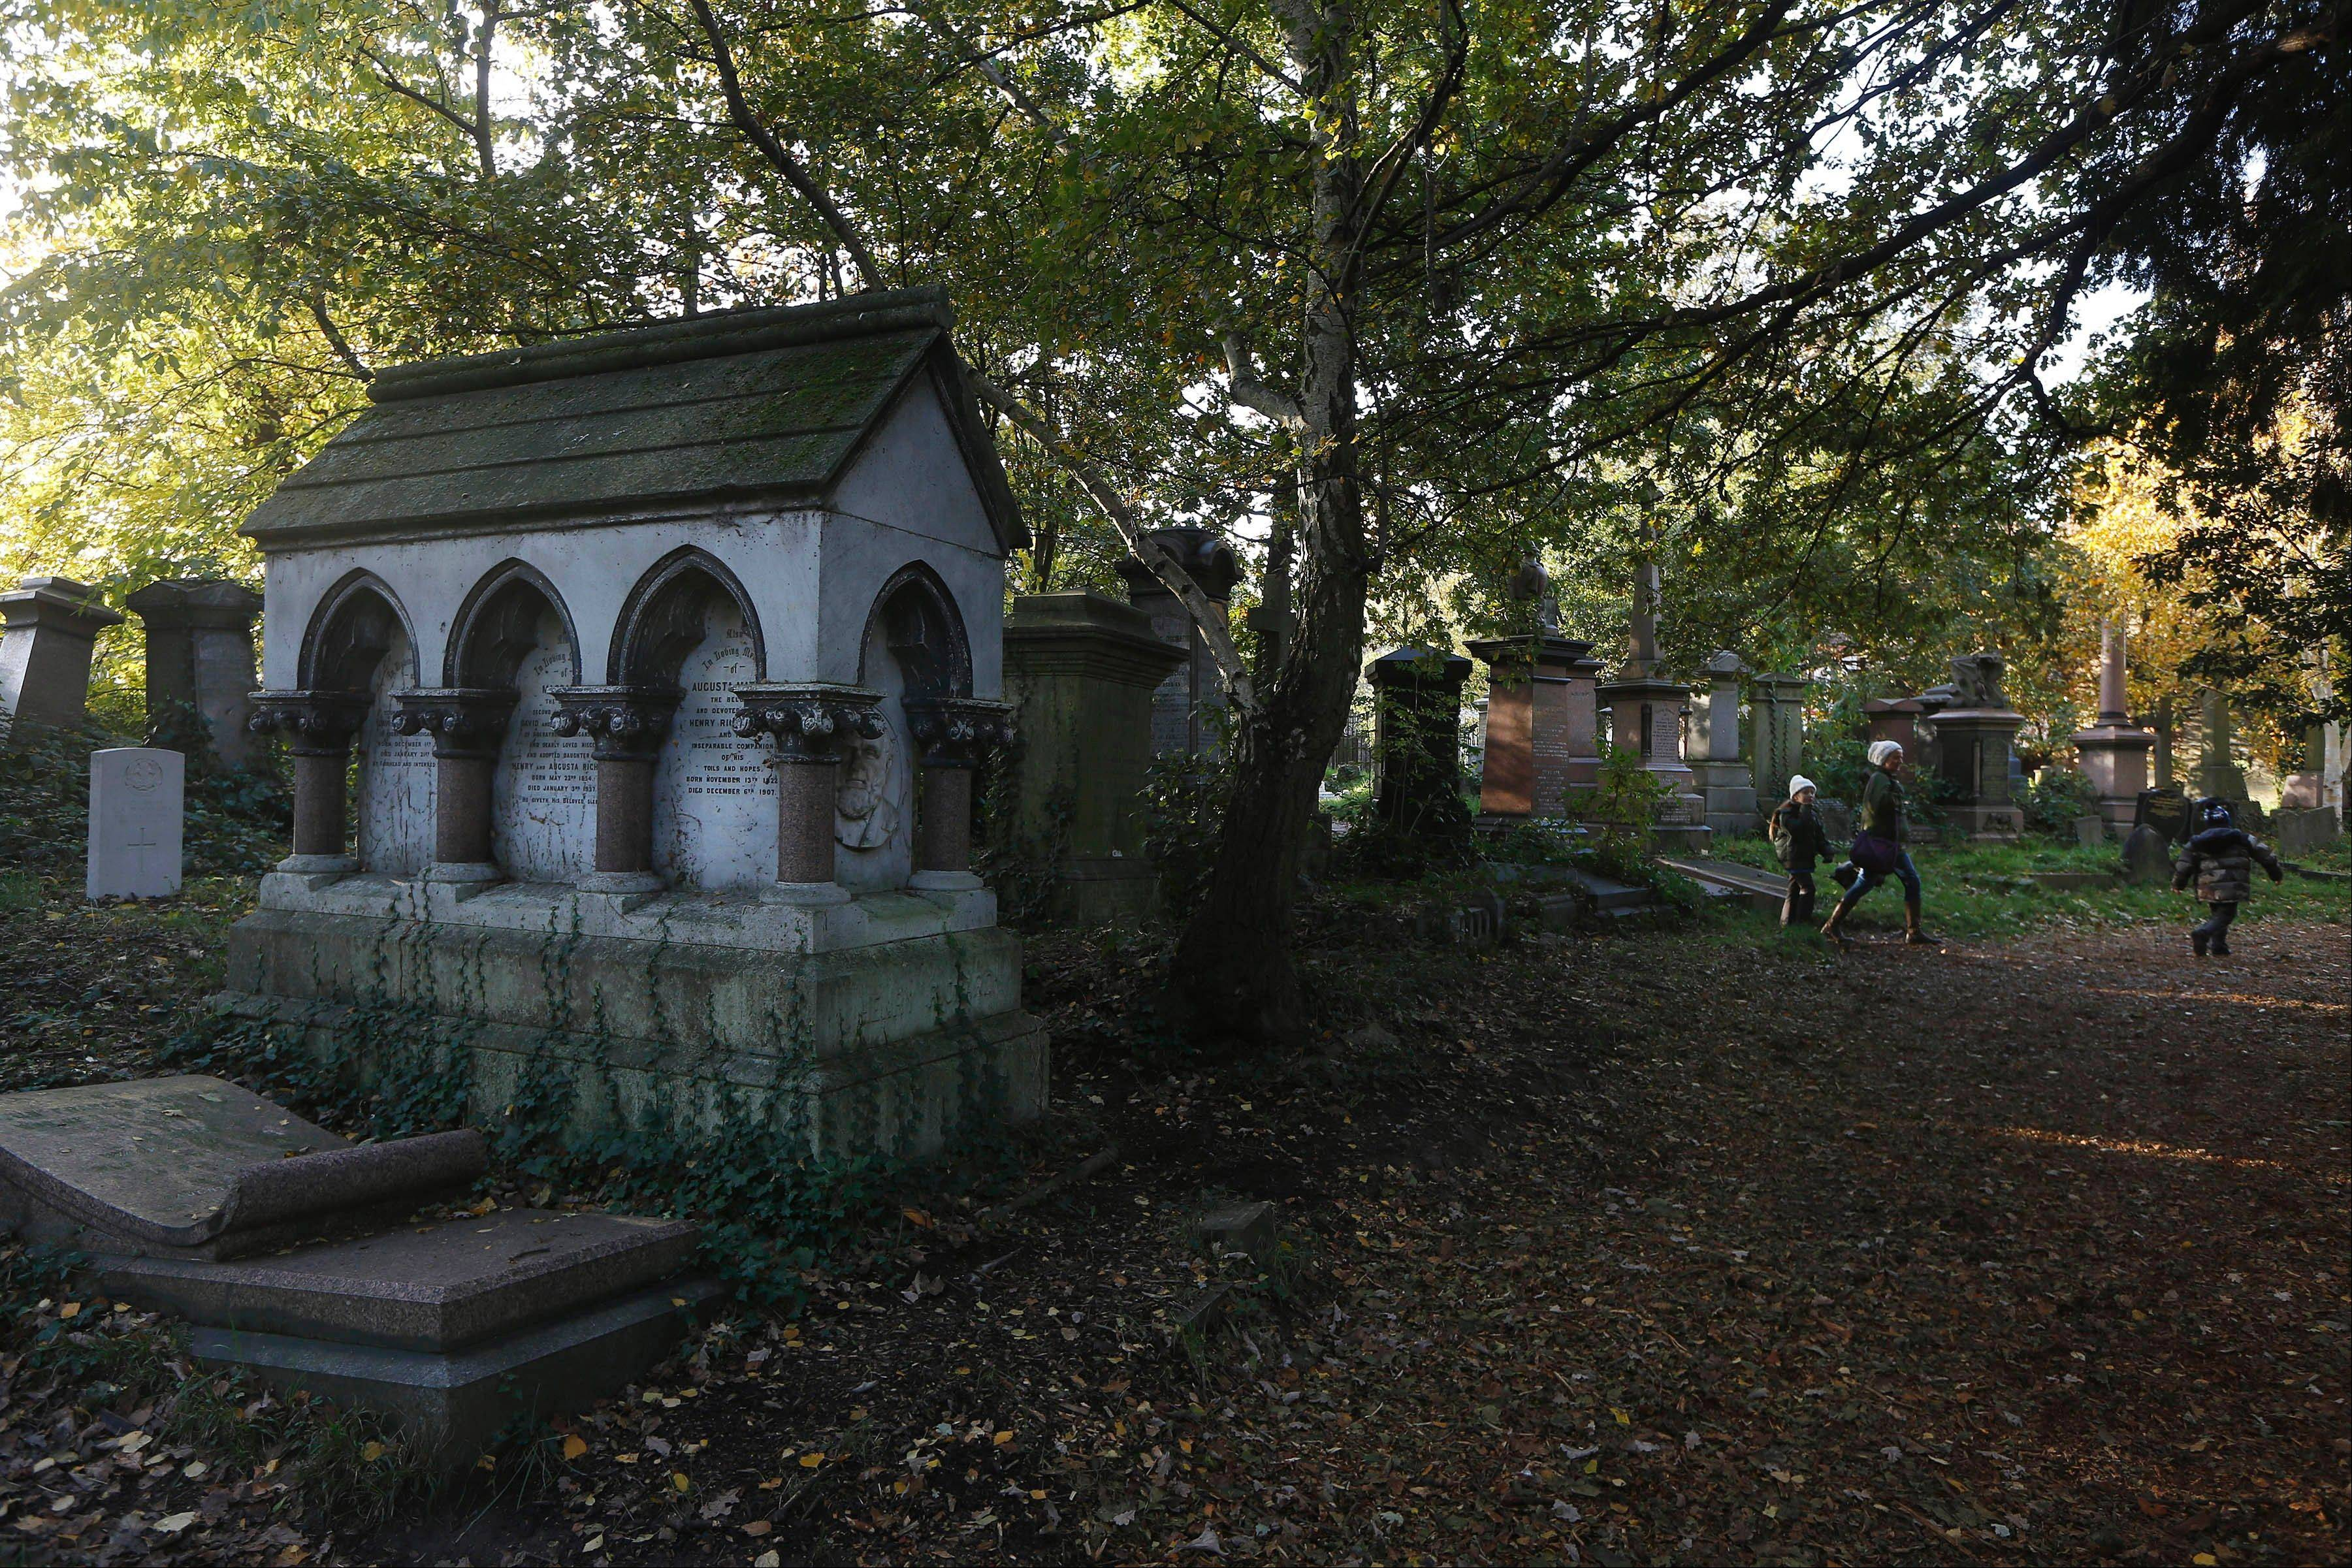 People walk through London's Abney Park Cemetery, which is a splendidly spooky, overgrown graveyard full of crumbling monuments and a ruined chapel, and it's free for visitors.